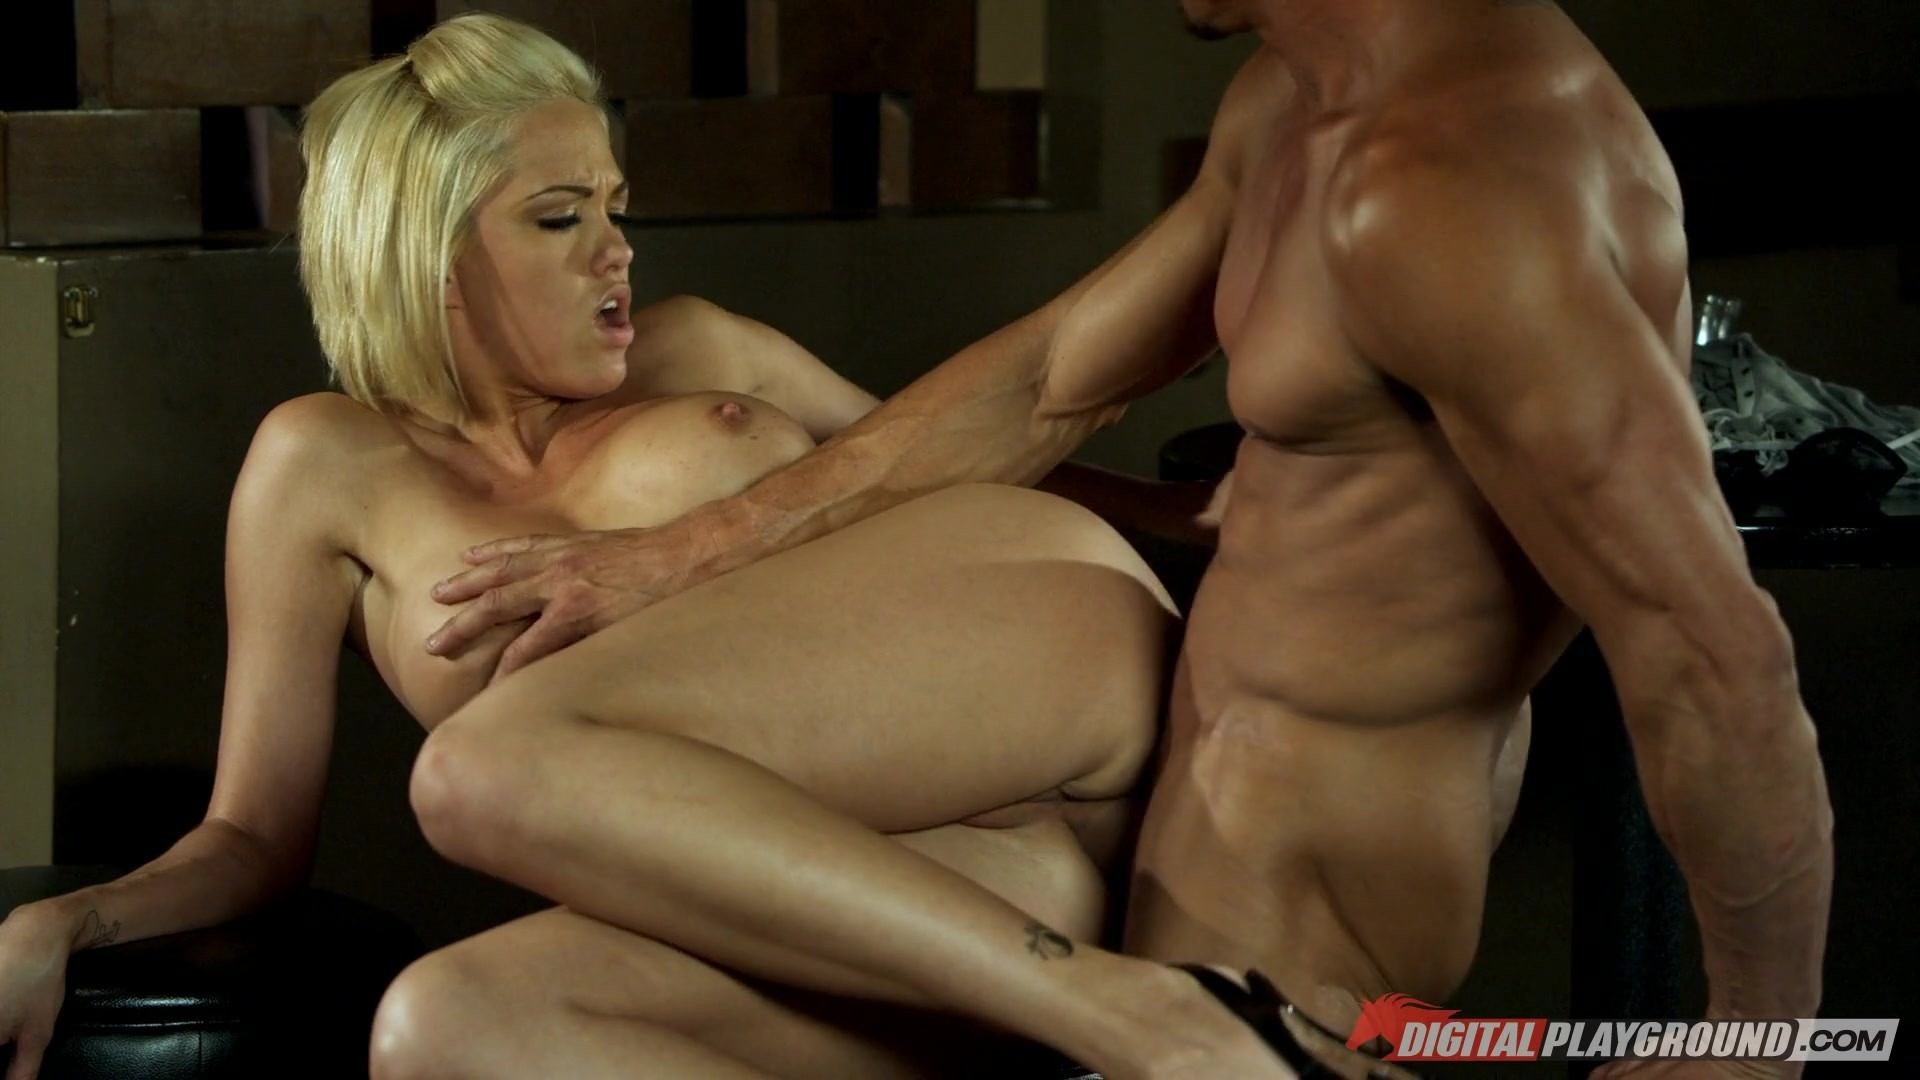 James riley steele porn